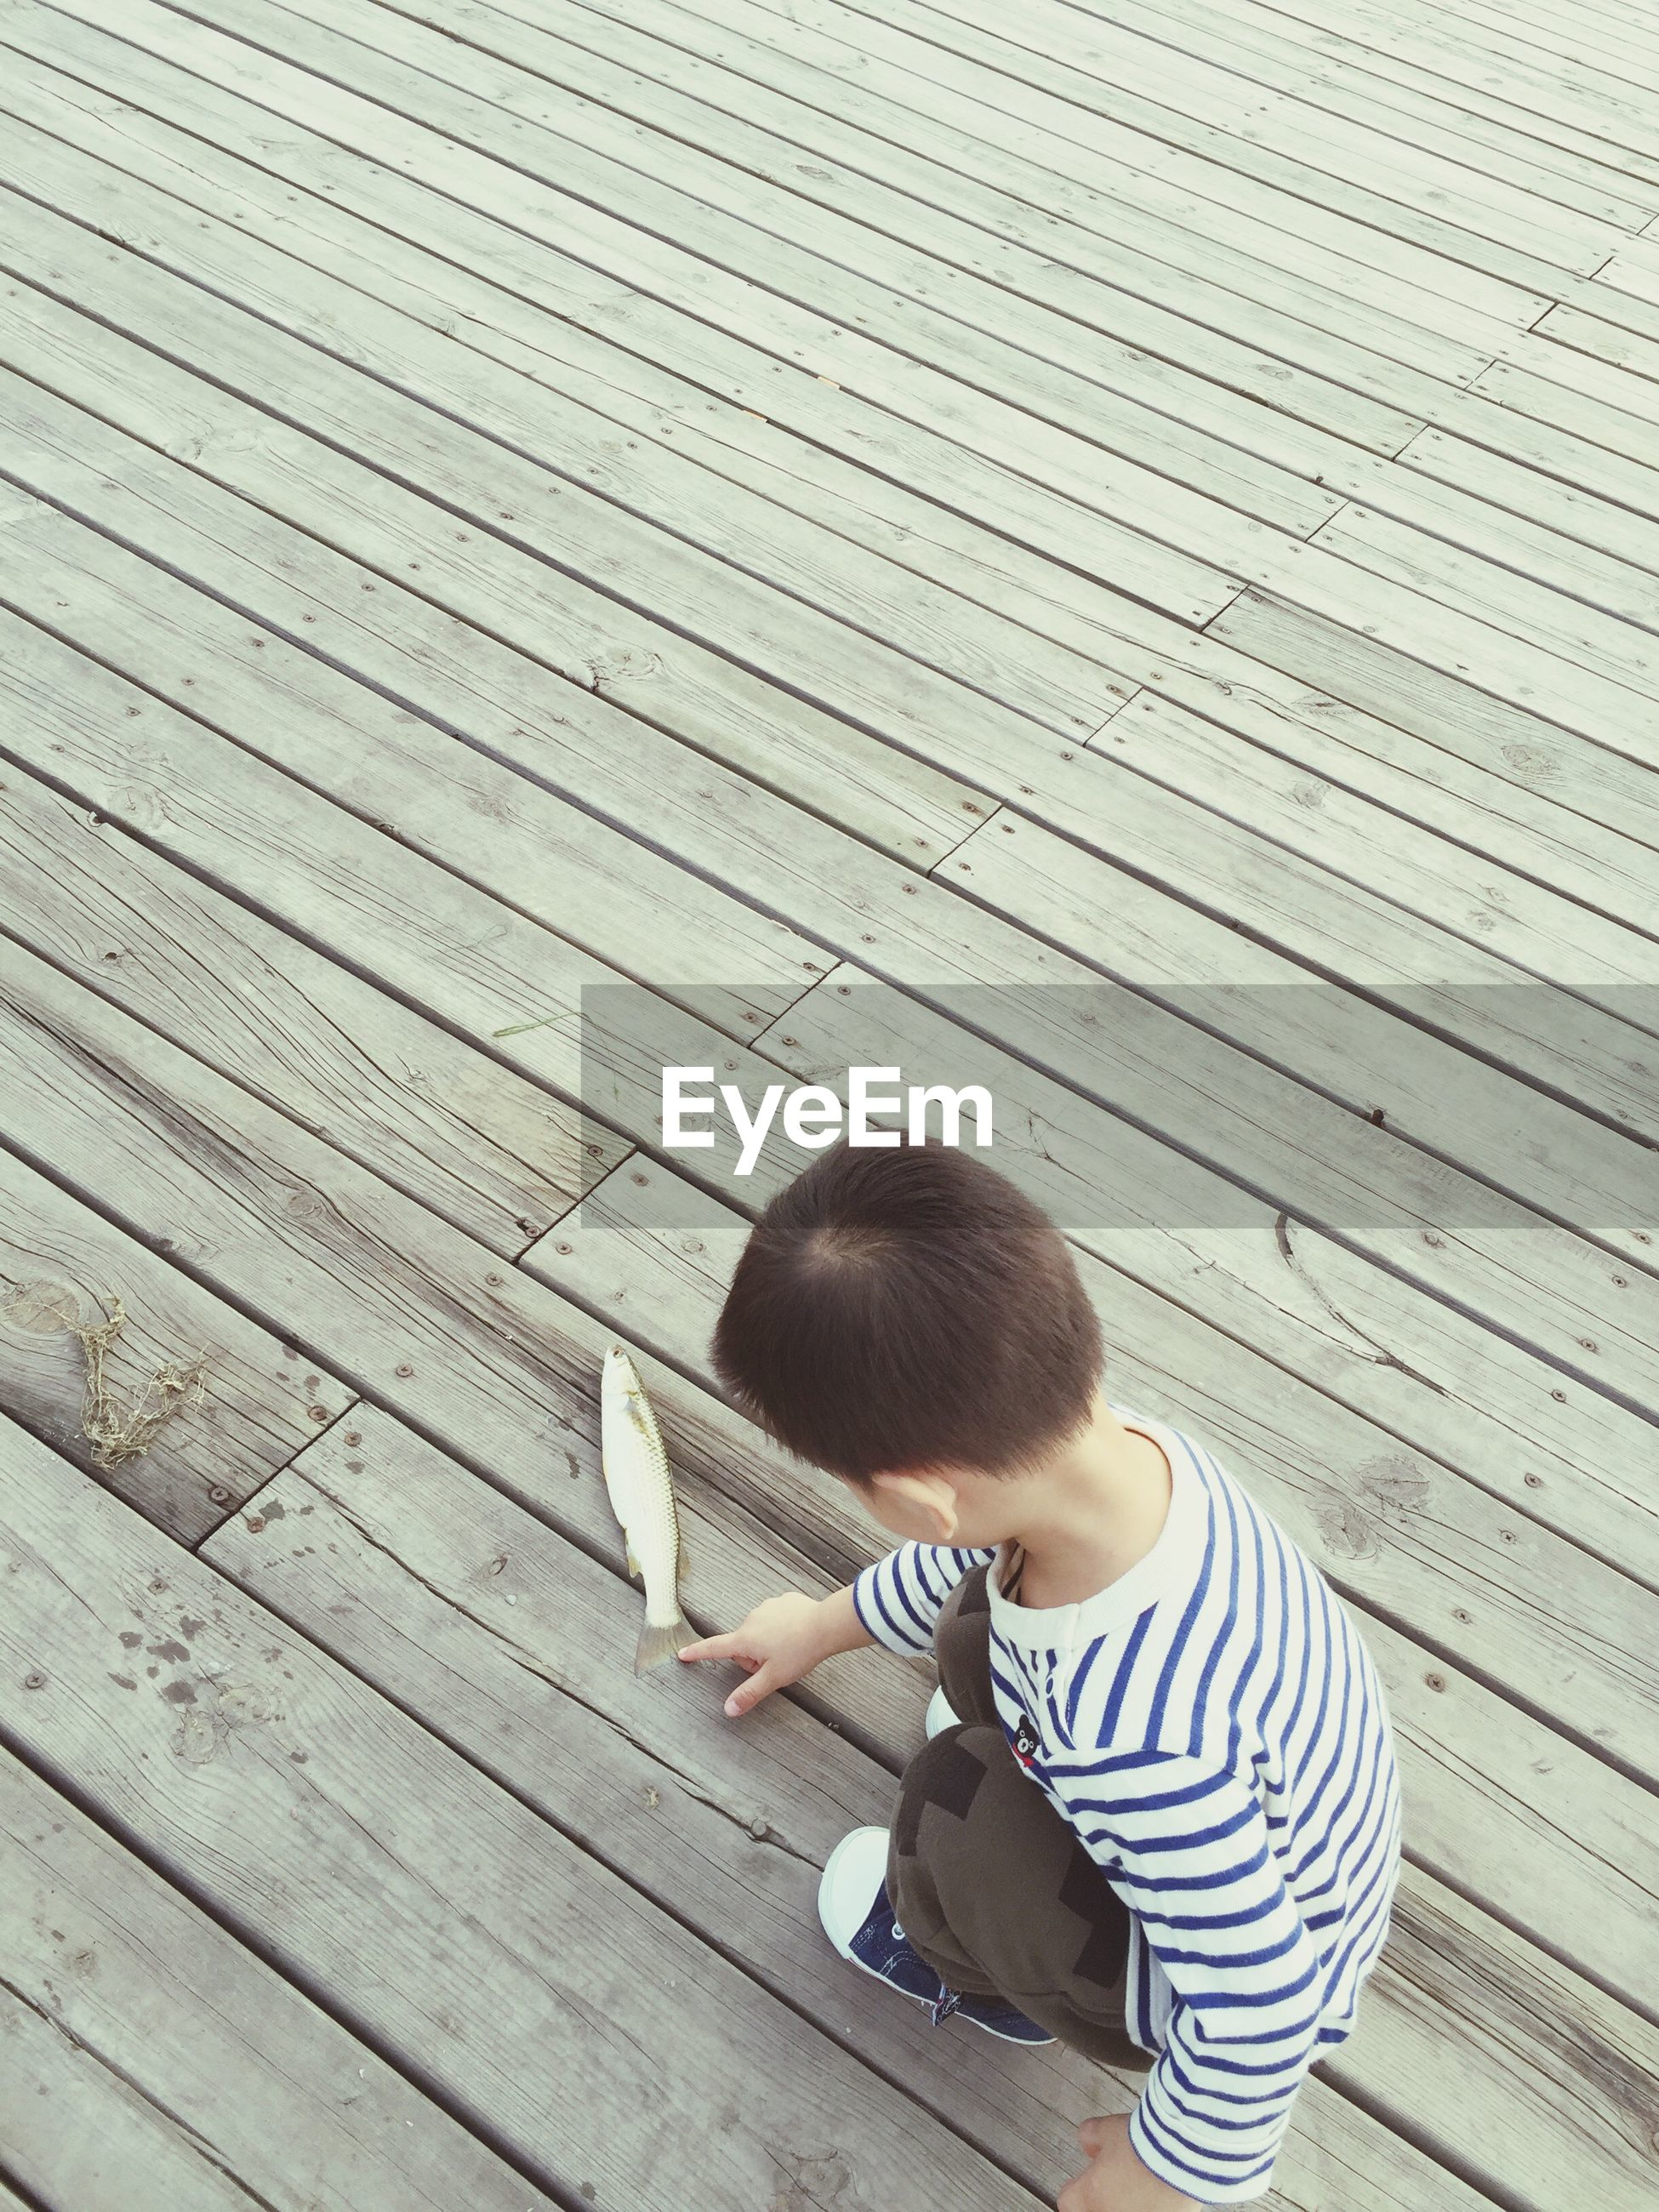 childhood, wood - material, leisure activity, lifestyles, innocence, casual clothing, holding, day, toddler, boardwalk, carefree